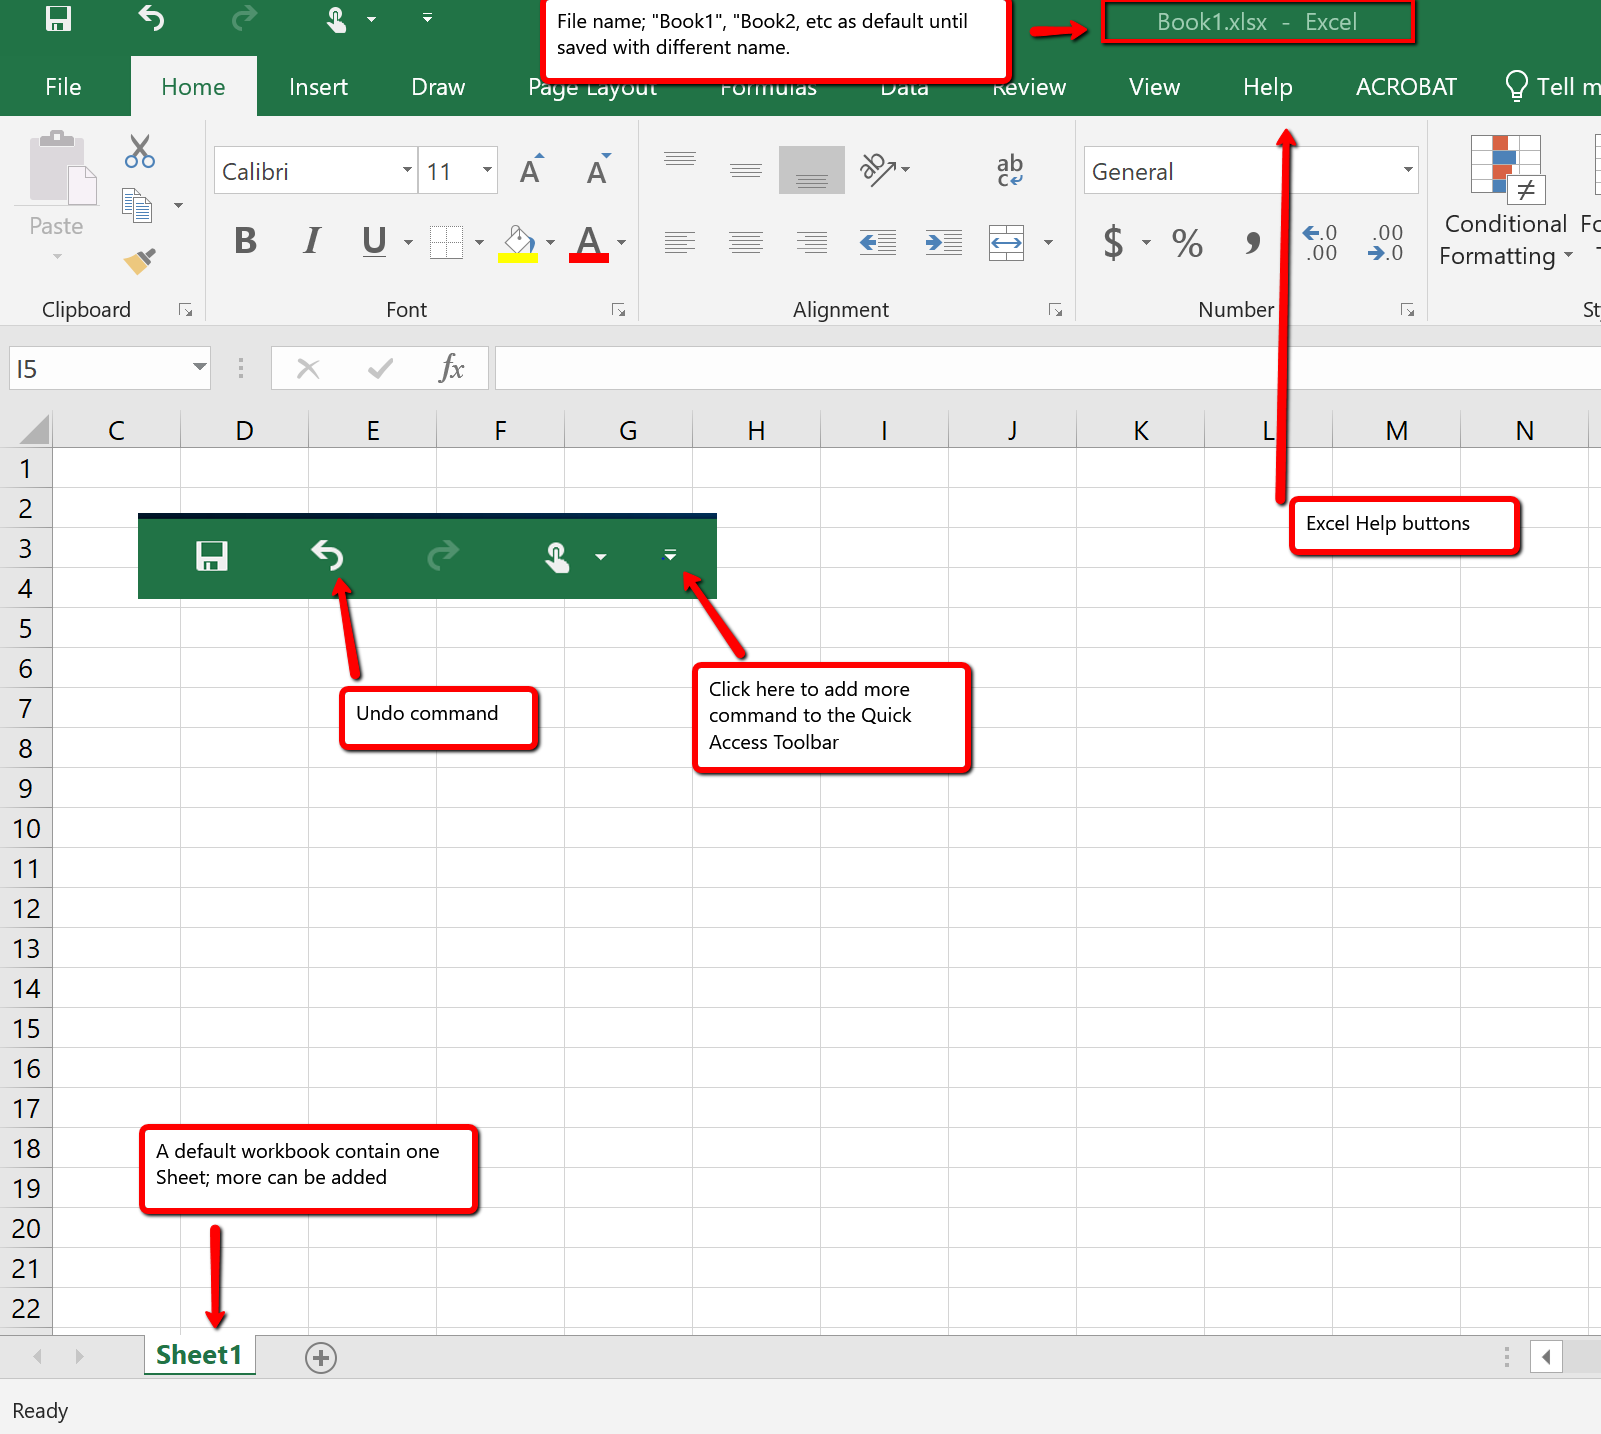 Quick access toolbar with commands Excel Help, Zoom slider, view options, and workbook tabs.